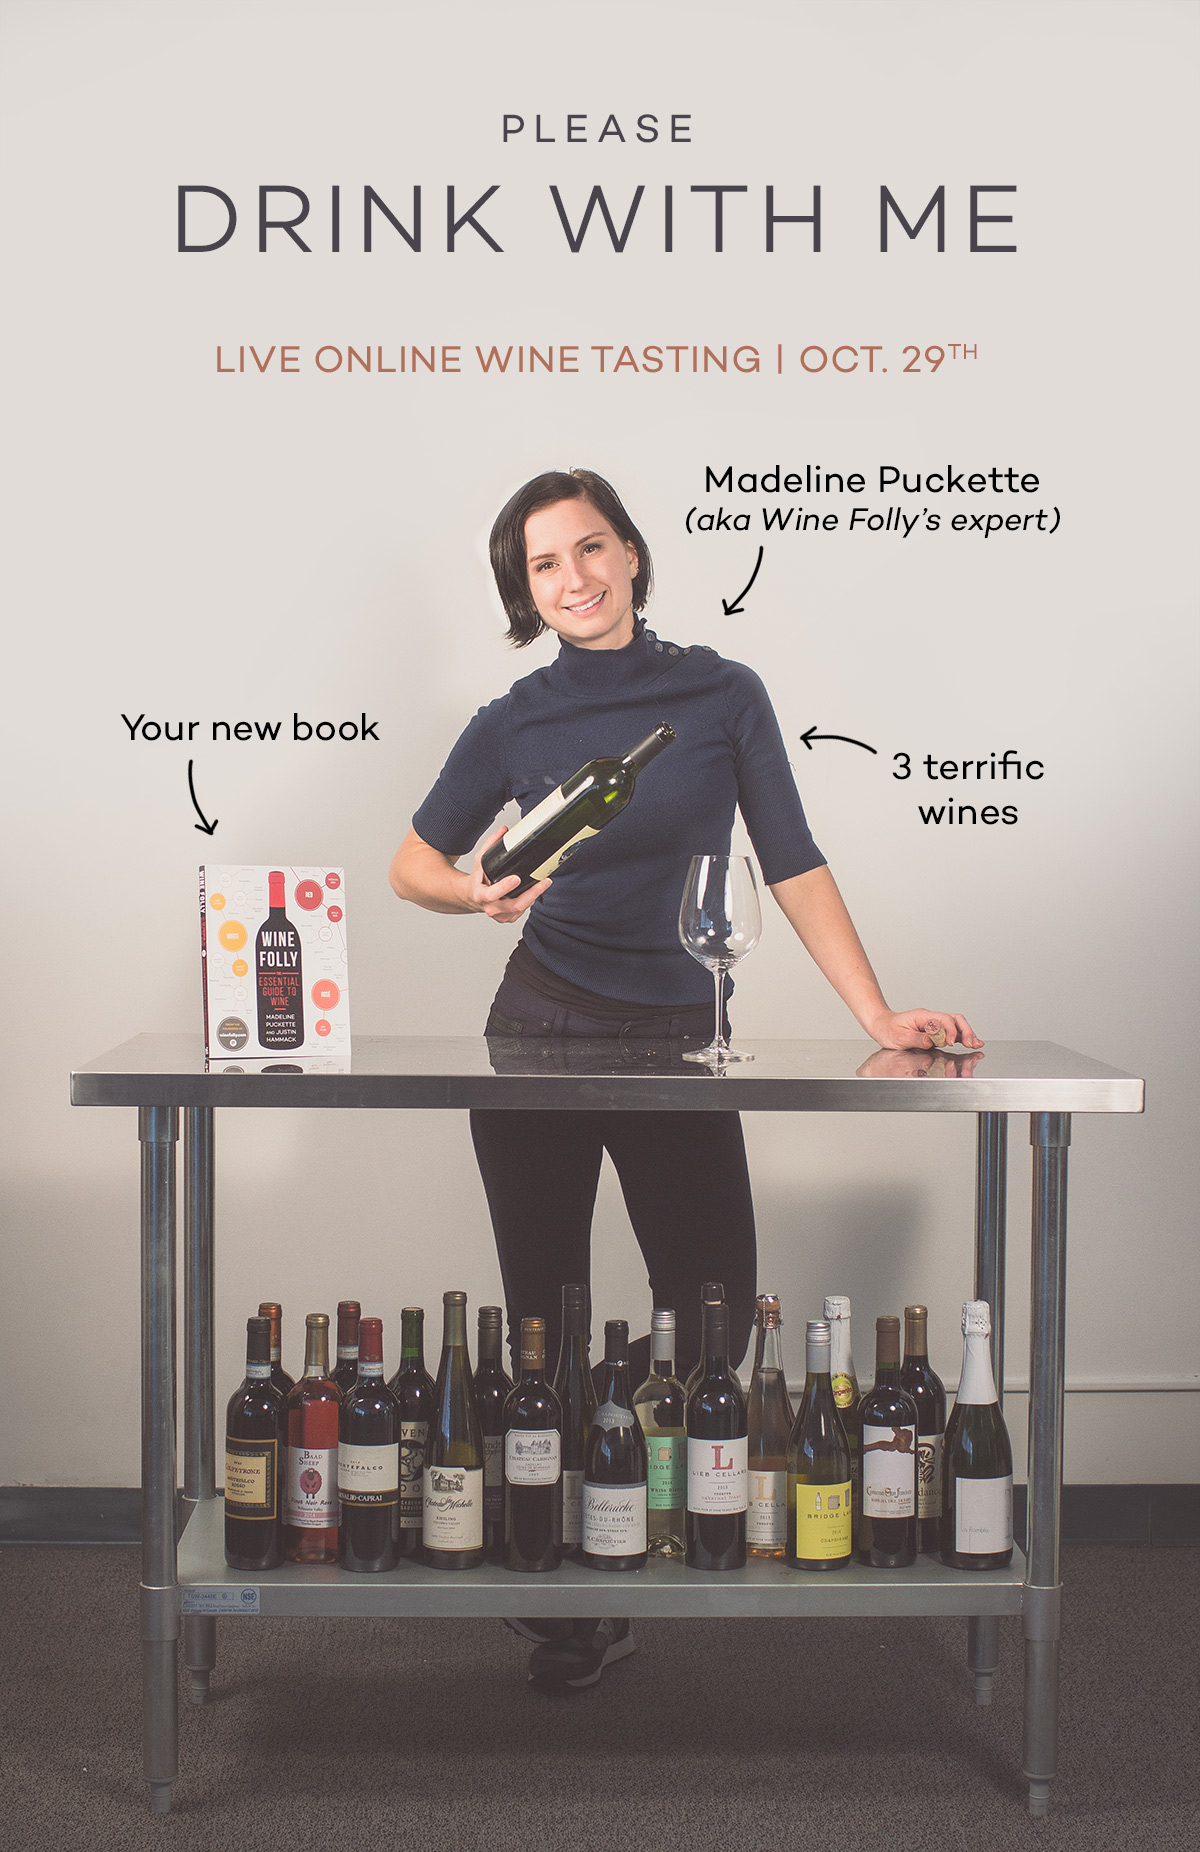 Please drink with me, Madeline Puckette, wine expert at Wine Folly